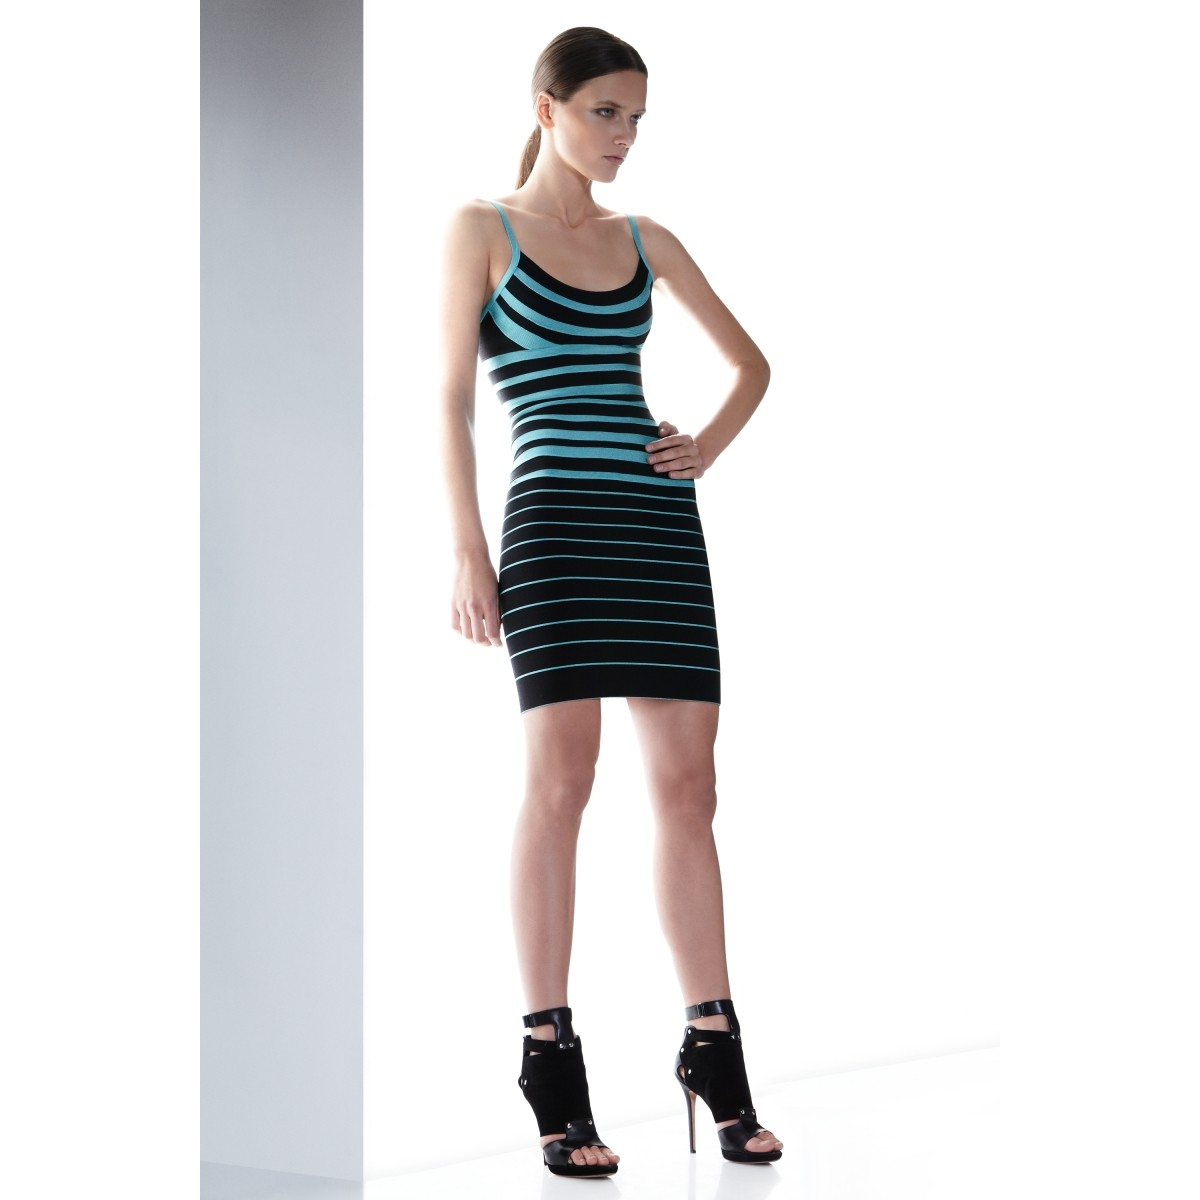 Herve Leger Drielle Striped Bandage Dress